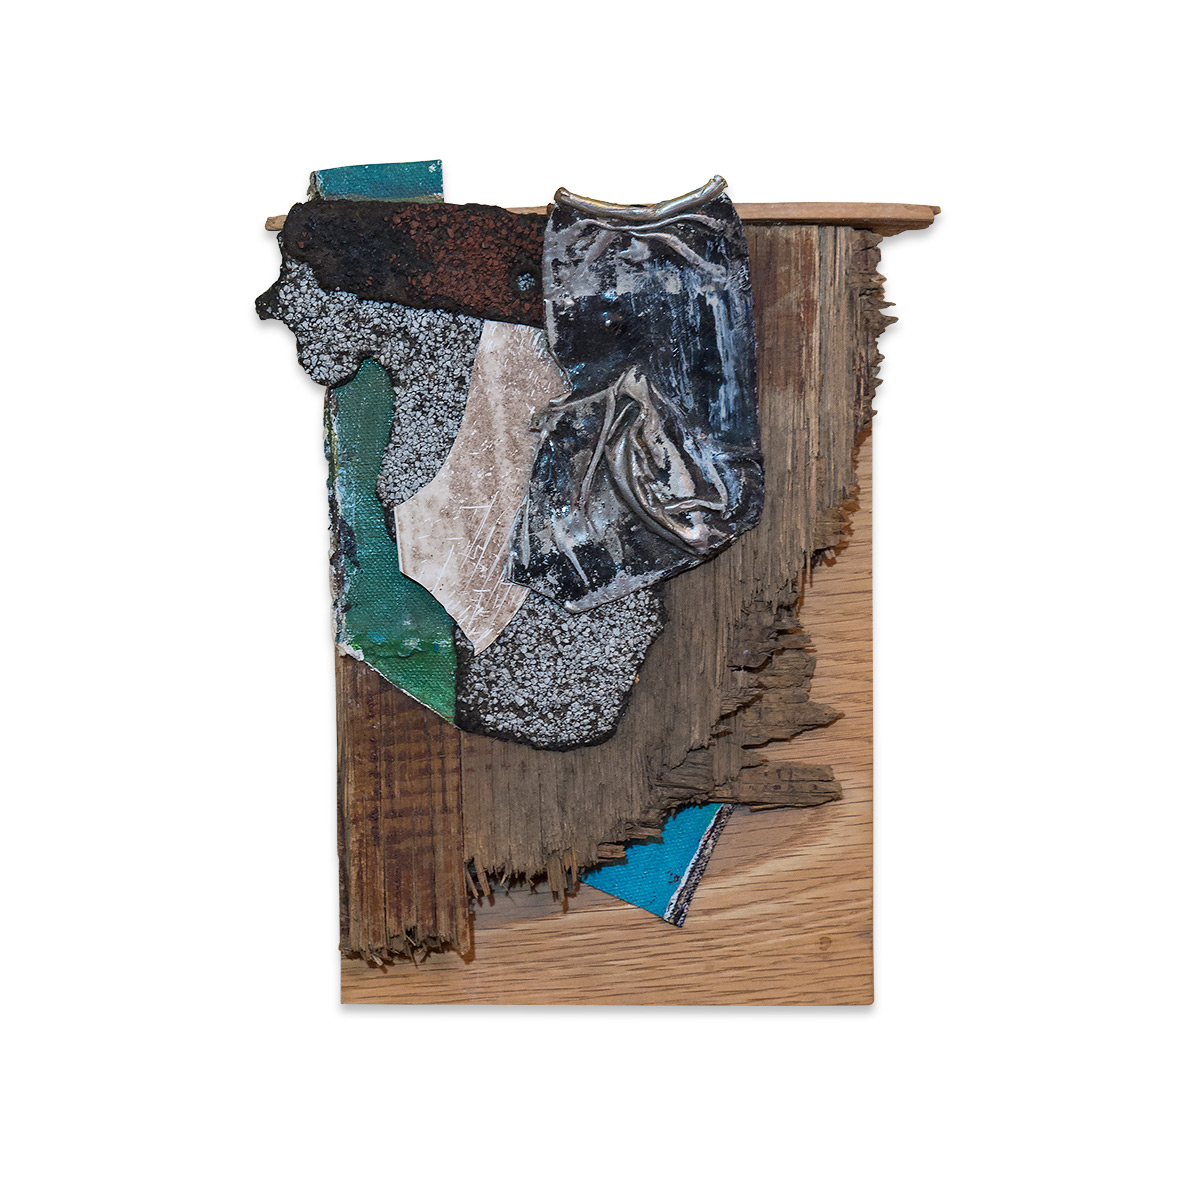 BABY TOUCH AND FEEL 2017 found objects/mixed media 9.5 x 7.5 in